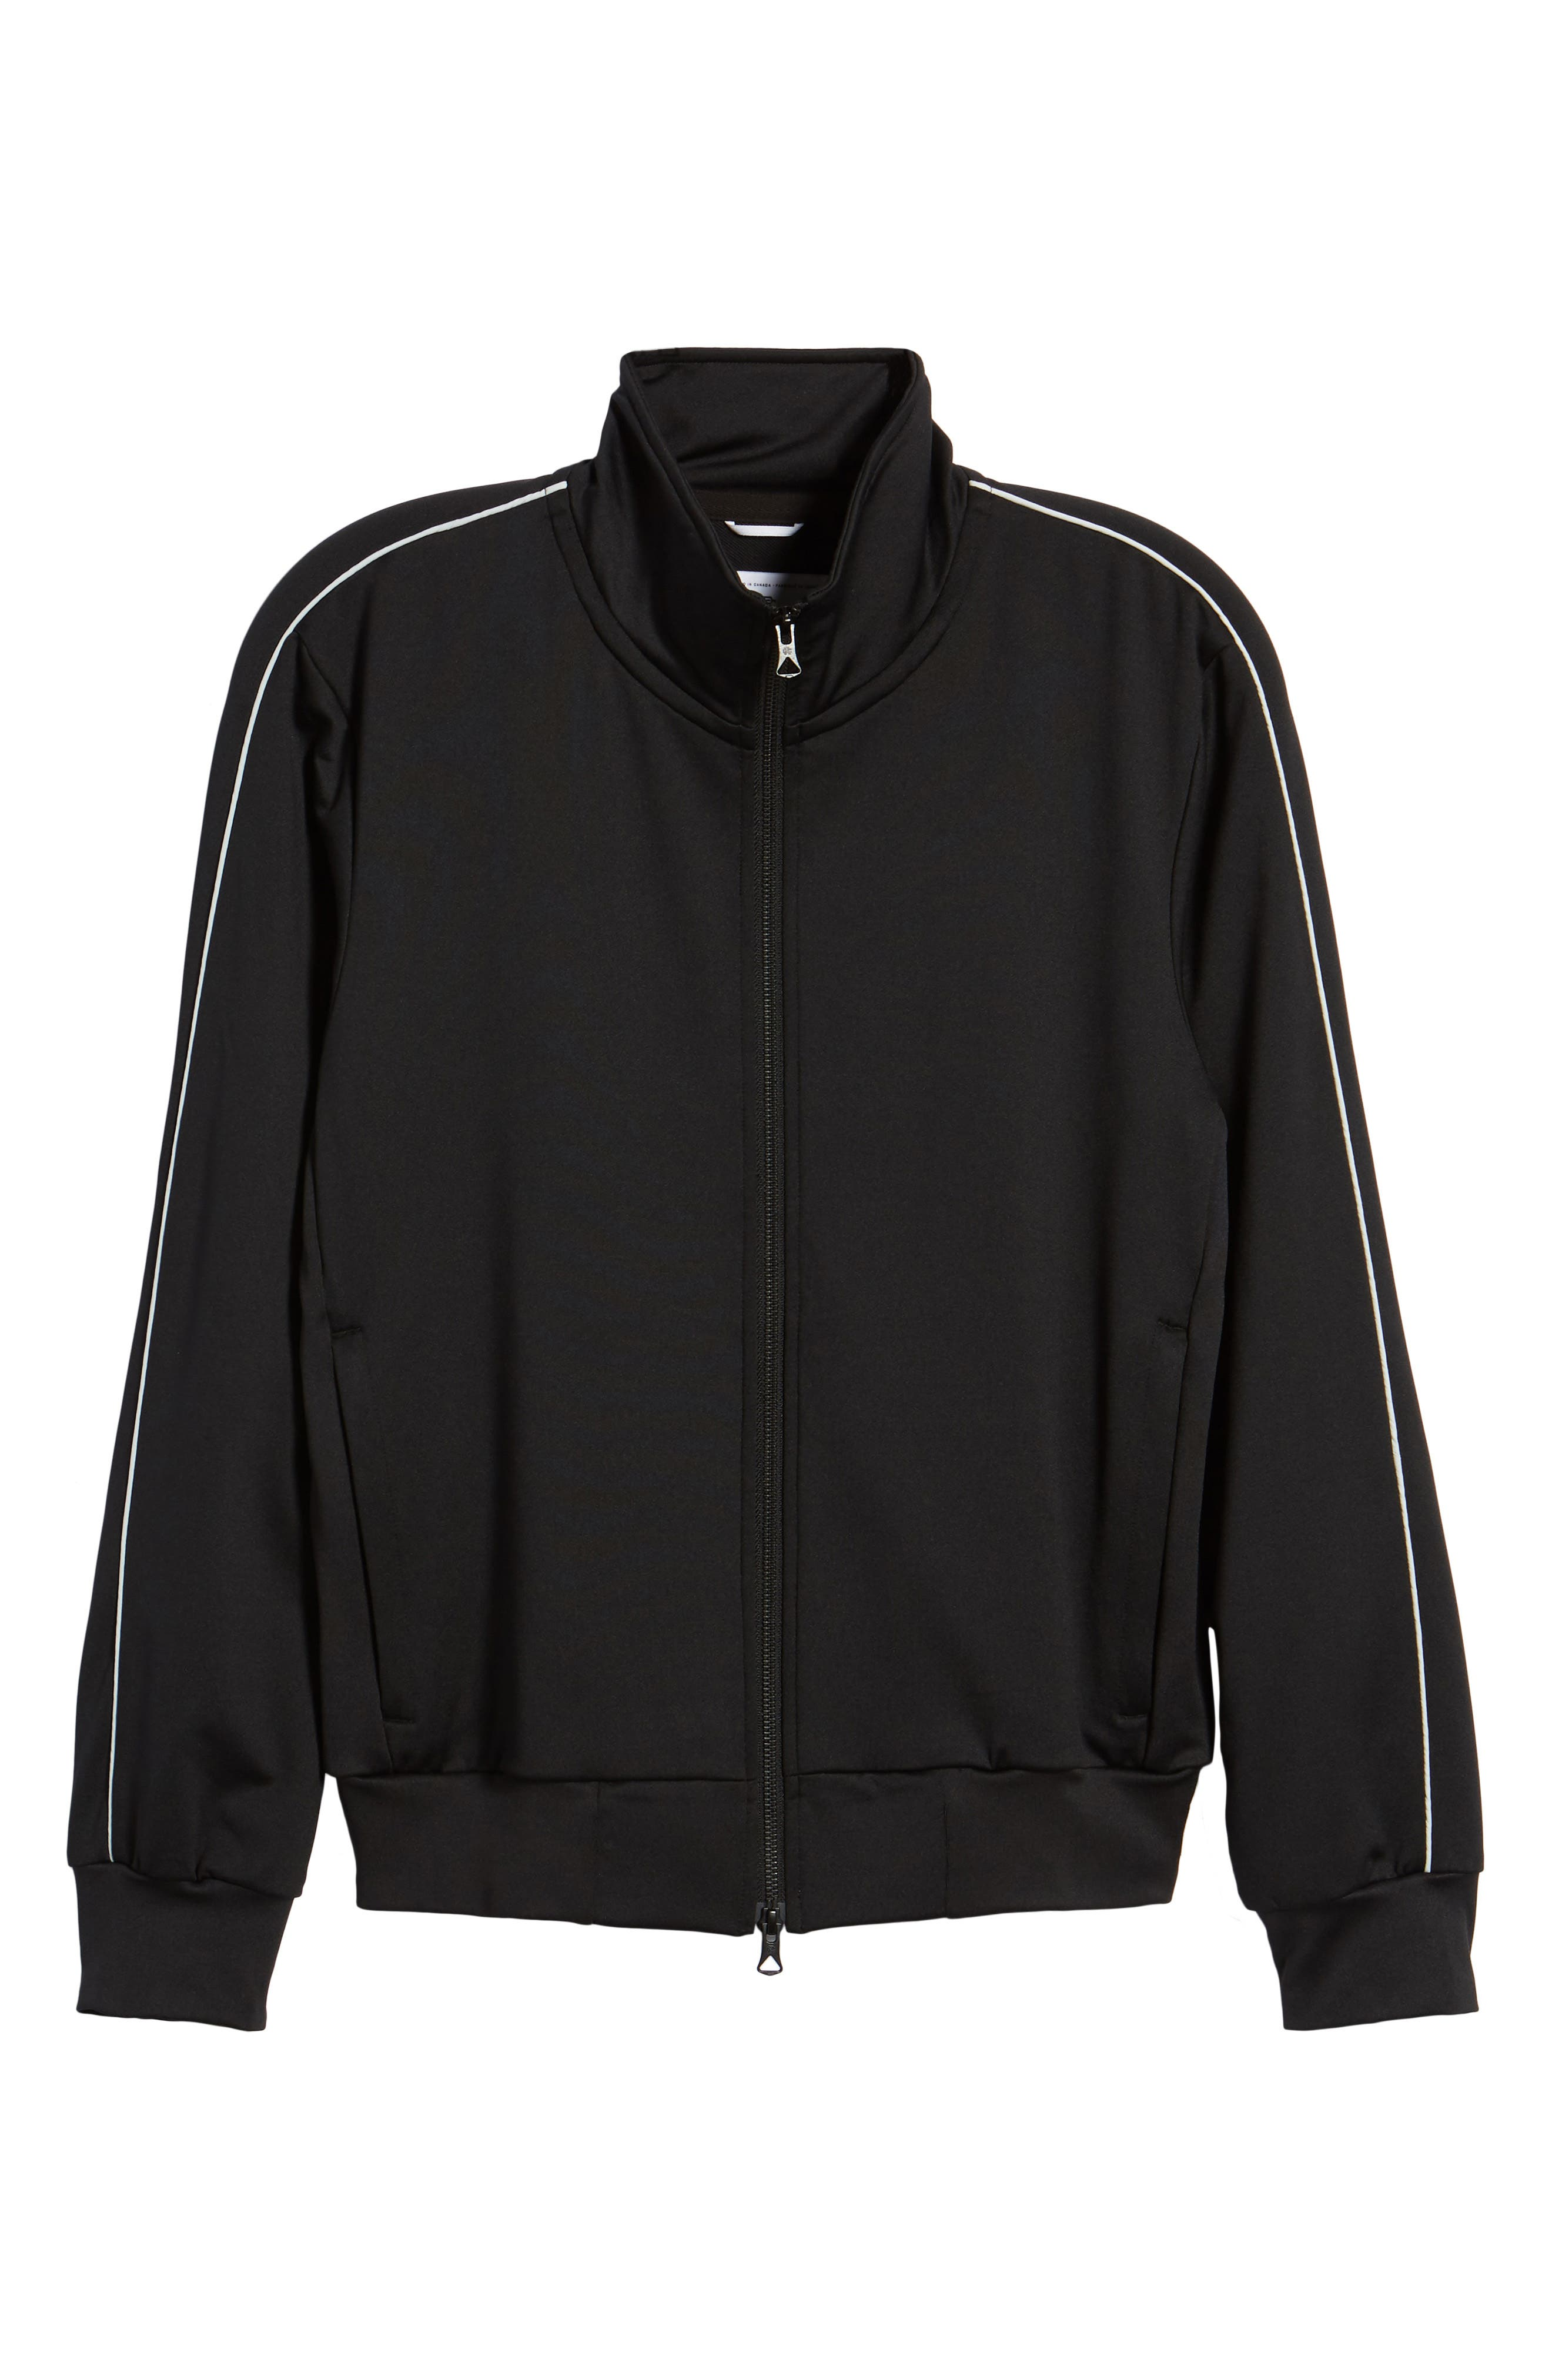 CoolMax<sup>®</sup> Track Jacket,                             Alternate thumbnail 6, color,                             Black